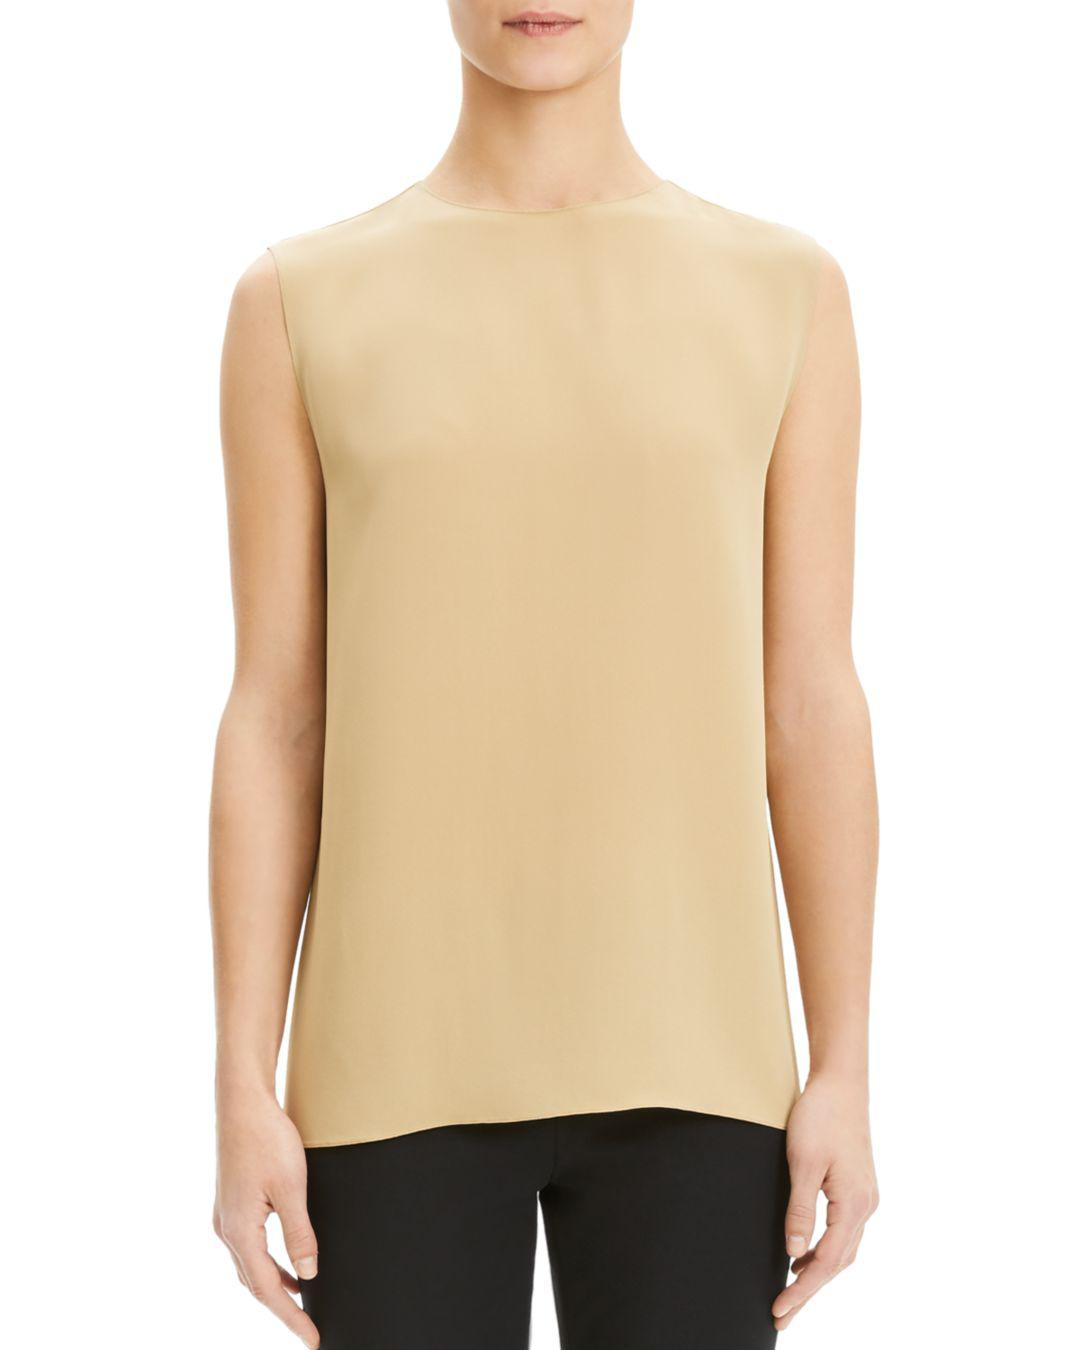 fce982deb75f9 Lyst - Theory Sleeveless Silk Top in Natural